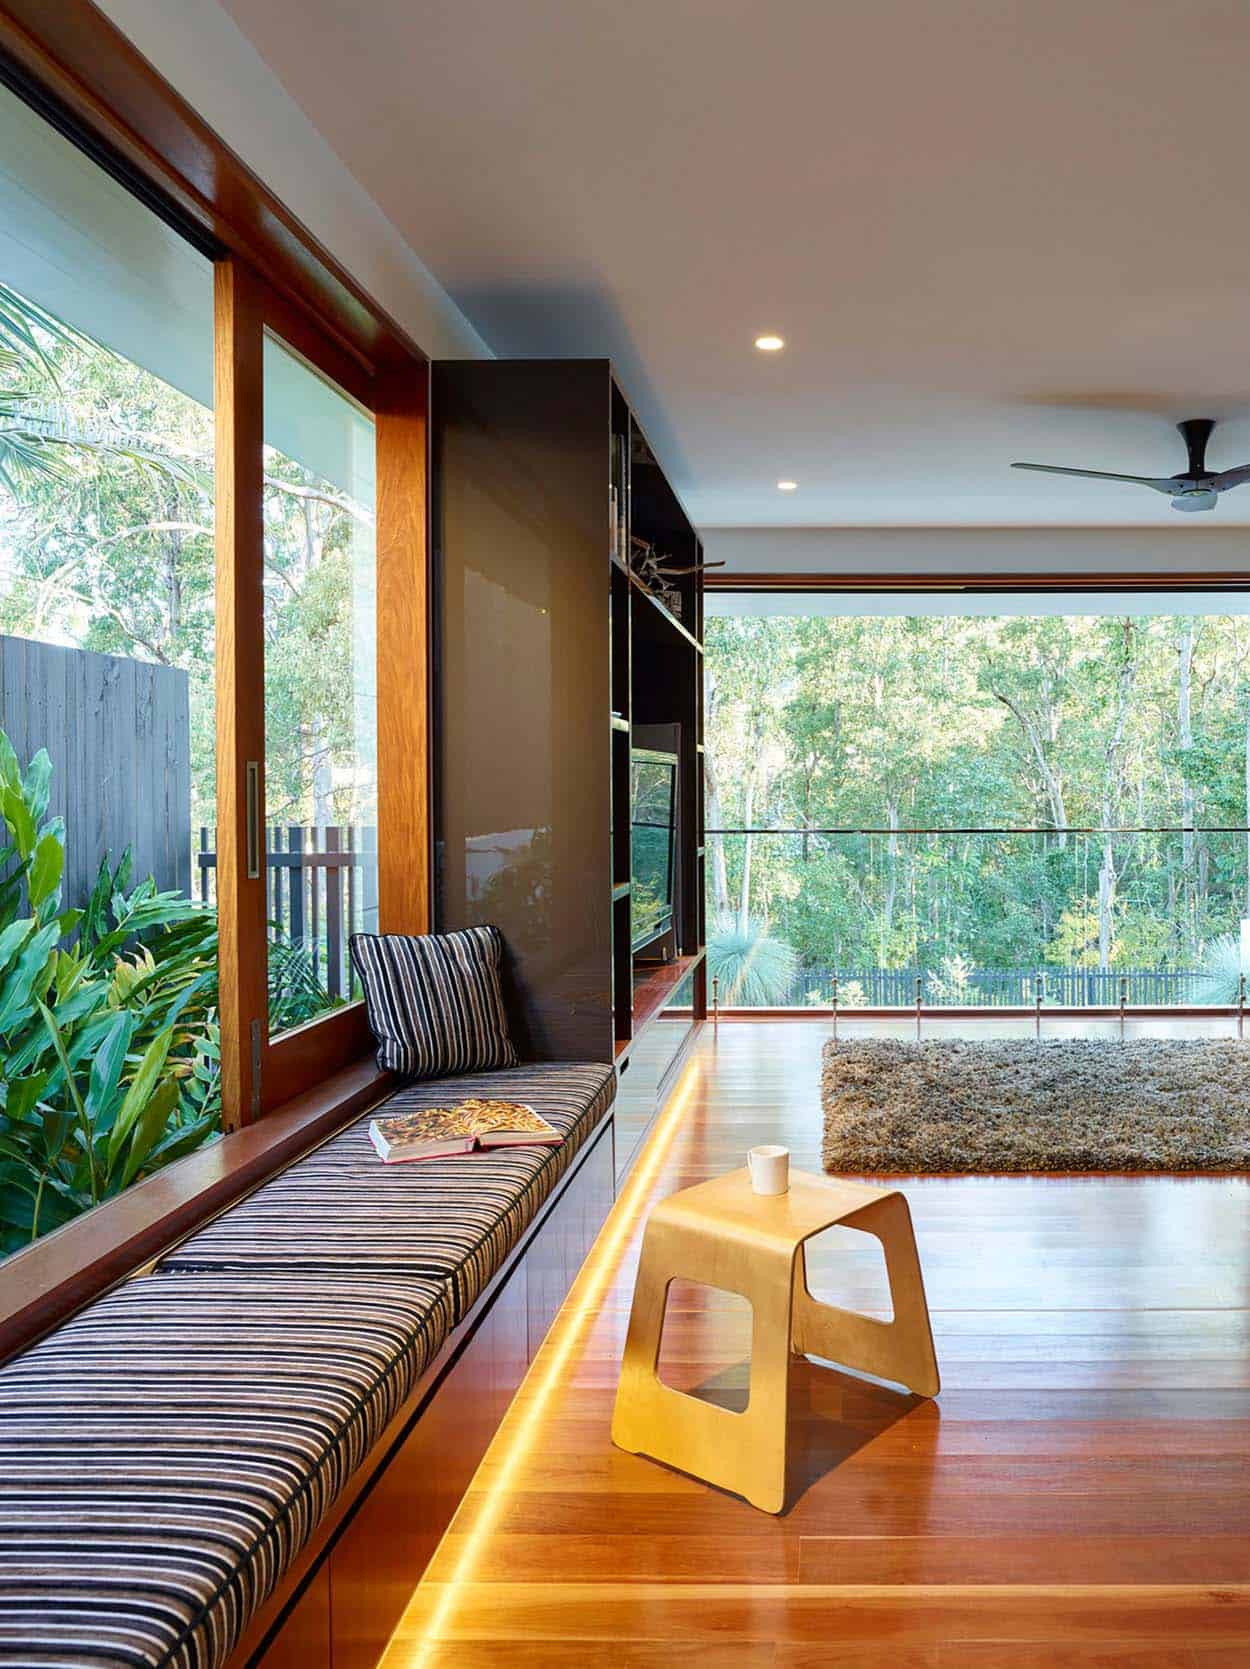 Architecture-Contemporary-Home-ONeill Architecture-06-1 Kindesign